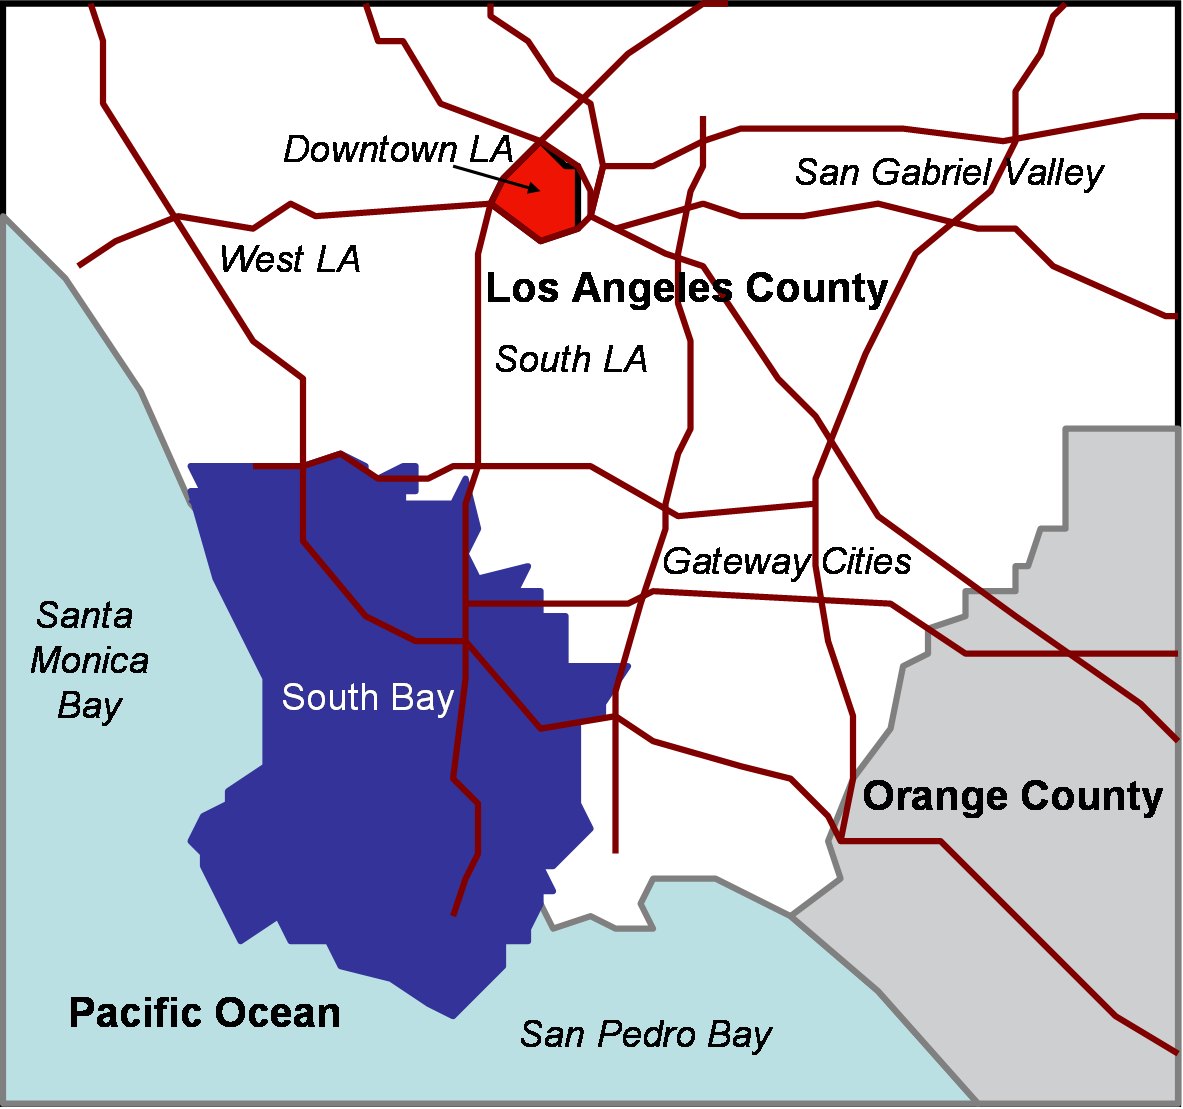 South Bay (Los Angeles County) - Wikipedia on northern virginia counties map, southern california tsunami risk, all of california cities map, southern california bro style, sacramento counties map, united states counties map, southern california county and cities, printable california state parks map, bay area counties map, texas southern zip code map, southern california watersheds, southern california memes, co counties map, ks counties map, southern california state parks, al counties map, southern california topographic maps, portland area counties map, calif counties map, northern california map,